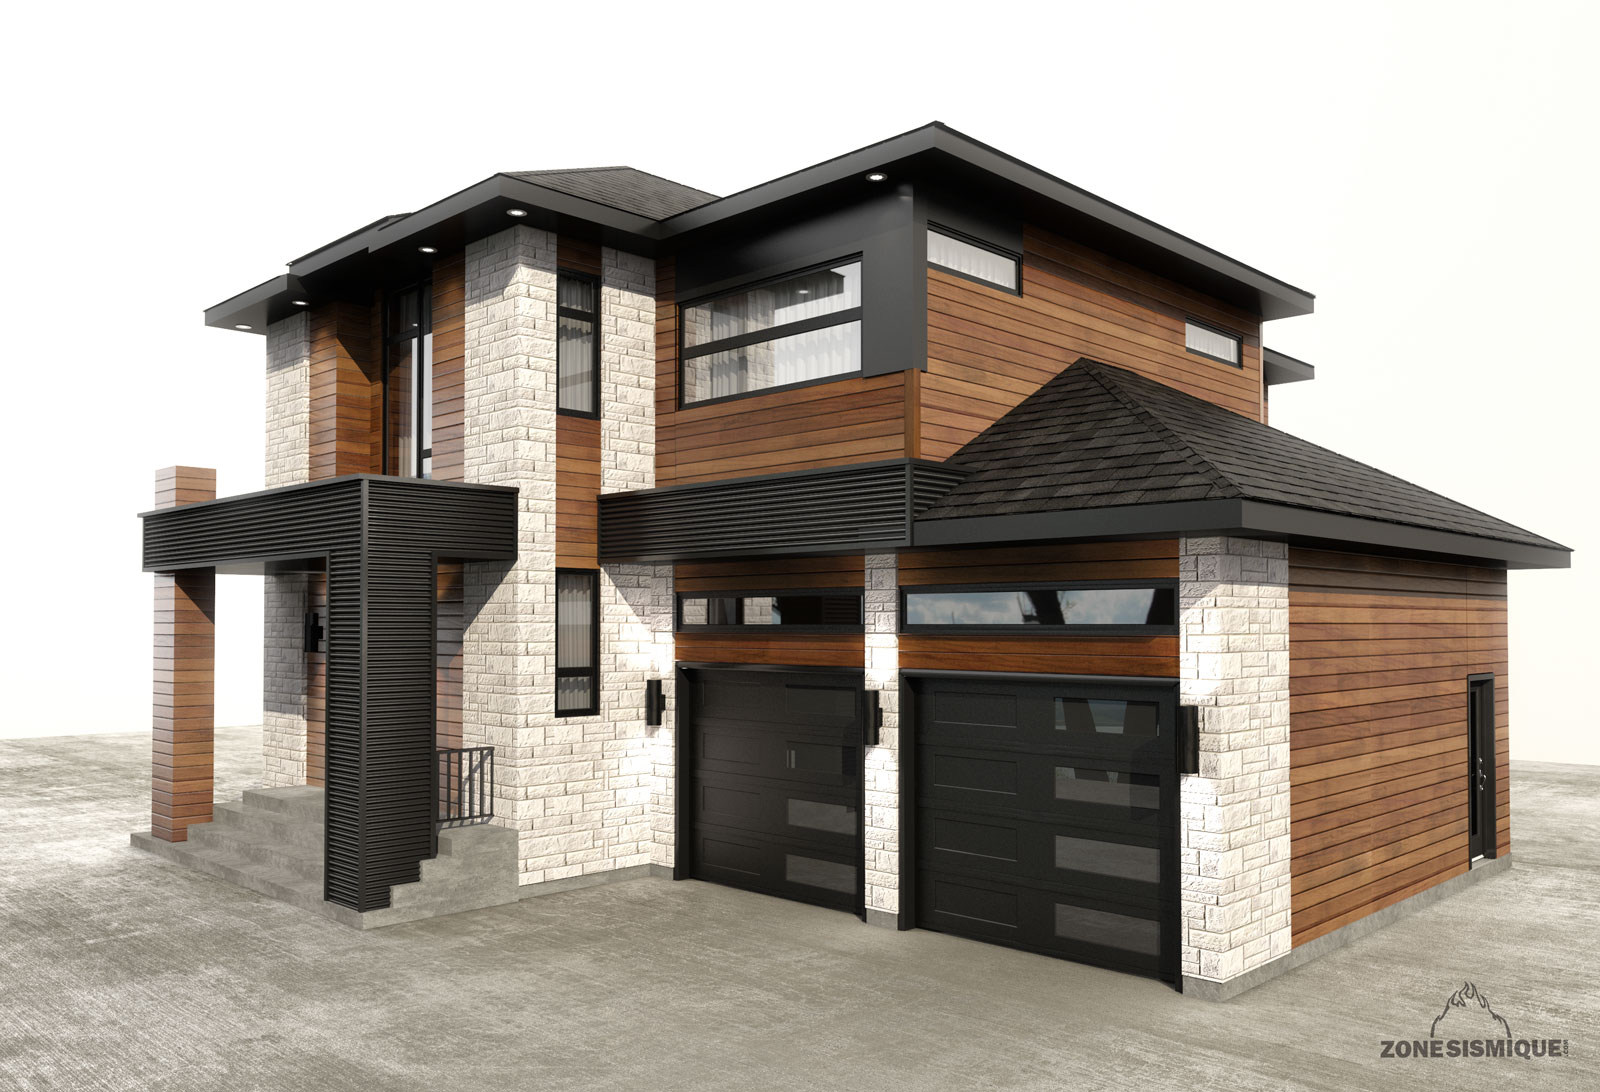 Zone sismique contruction salette maison moderne garage for Construction maison 3d